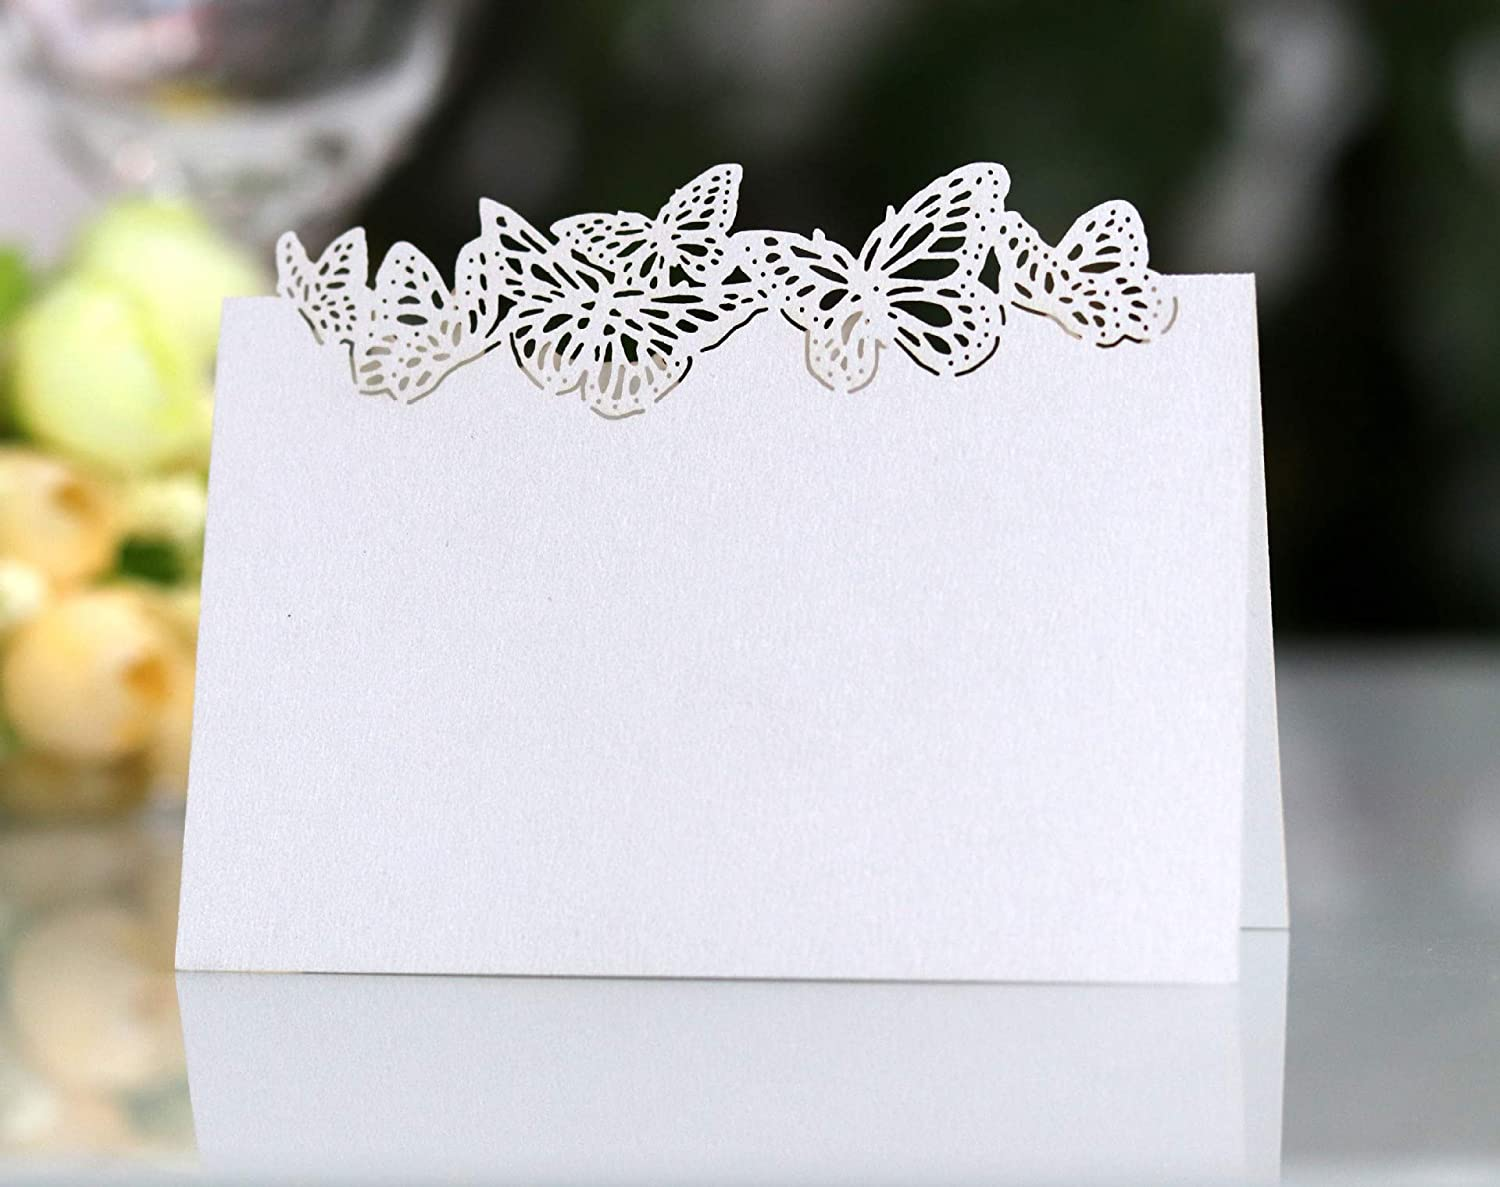 50-Laser cut Butterflies Name Place Cards,Table Cards,Wedding Sweets Favours